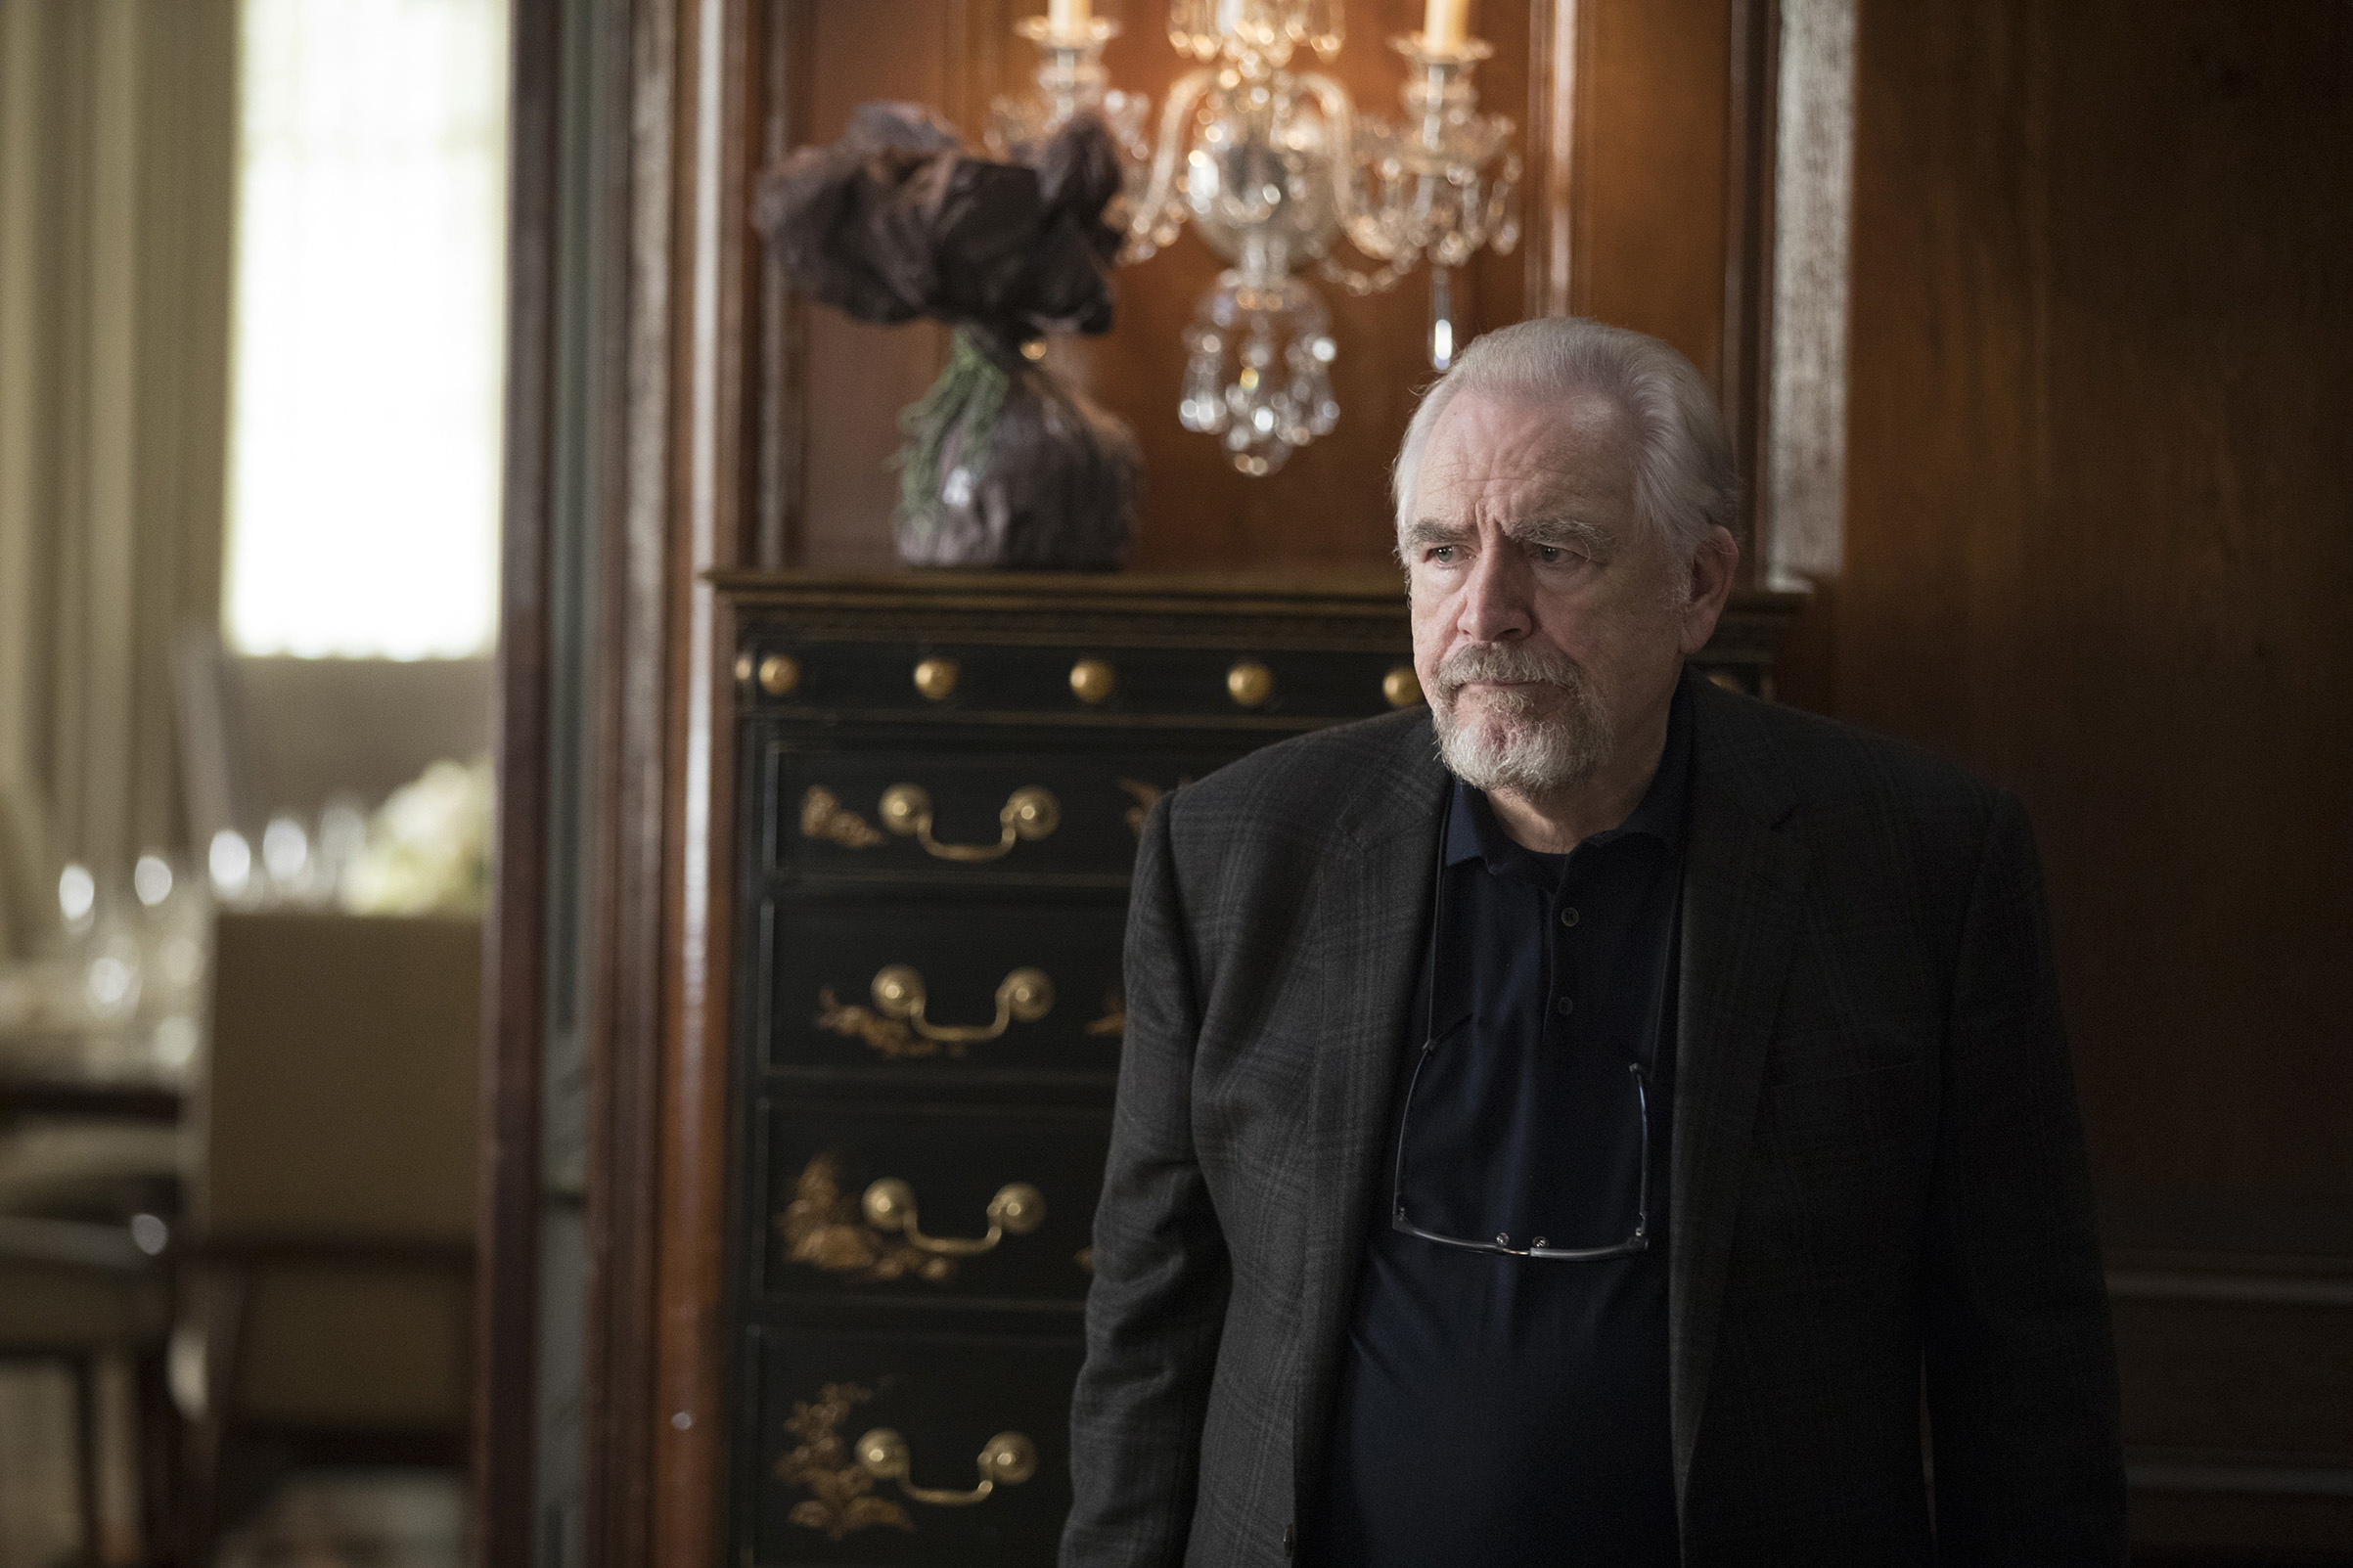 On Succession, Brian Cox plays Logan Roy, a mogul searching for an heir